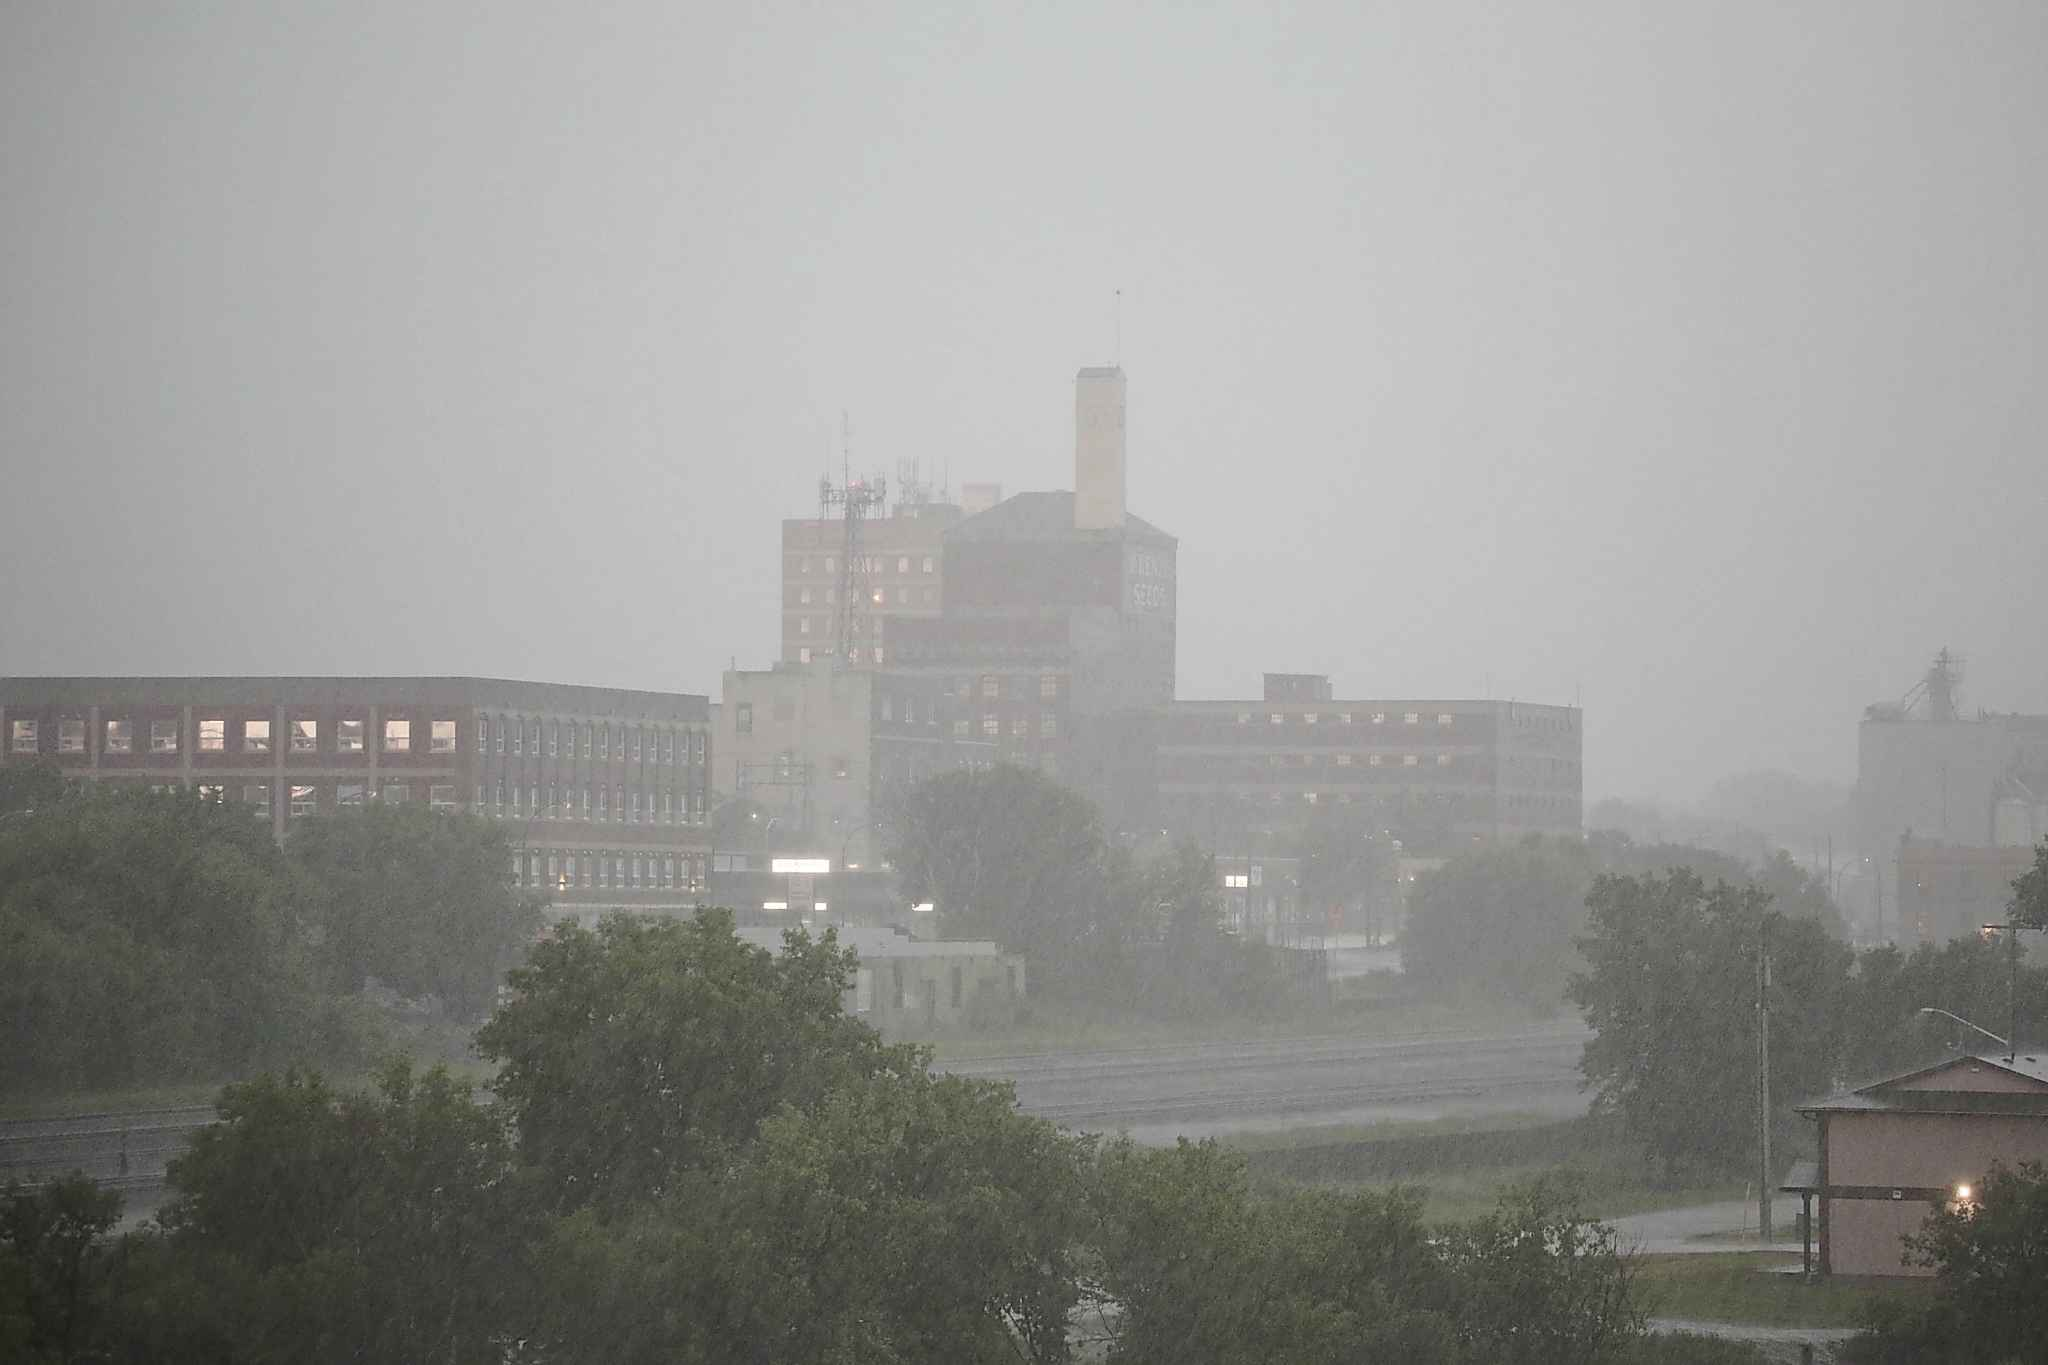 Downtown Brandon gets pelted with rain around 5 p.m. Sunday. As of Sunday evening, at 5:52 p.m, meteorologists from Environment Canada  warned about a line of thunderstorms that stretched from south of Elgin to just north of Dauphin Lake, traveling northeast at 25 kilometres an hour. (Kyle Darbyson/The Brandon Sun)